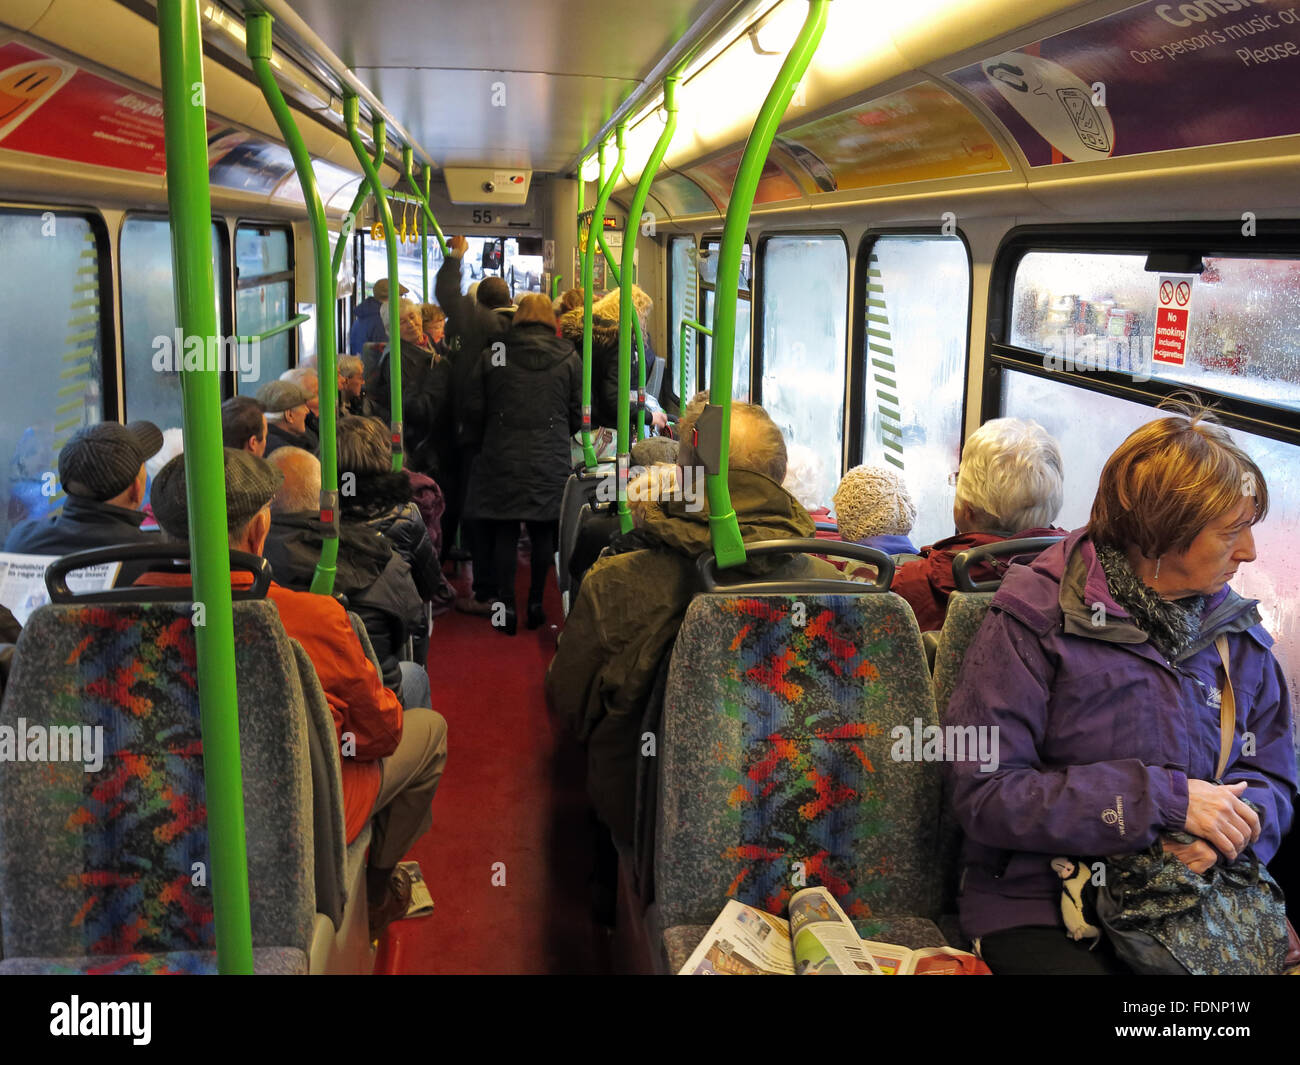 A busy public bus in Warrington,Cheshire,England,UK with passengers - Stock Image